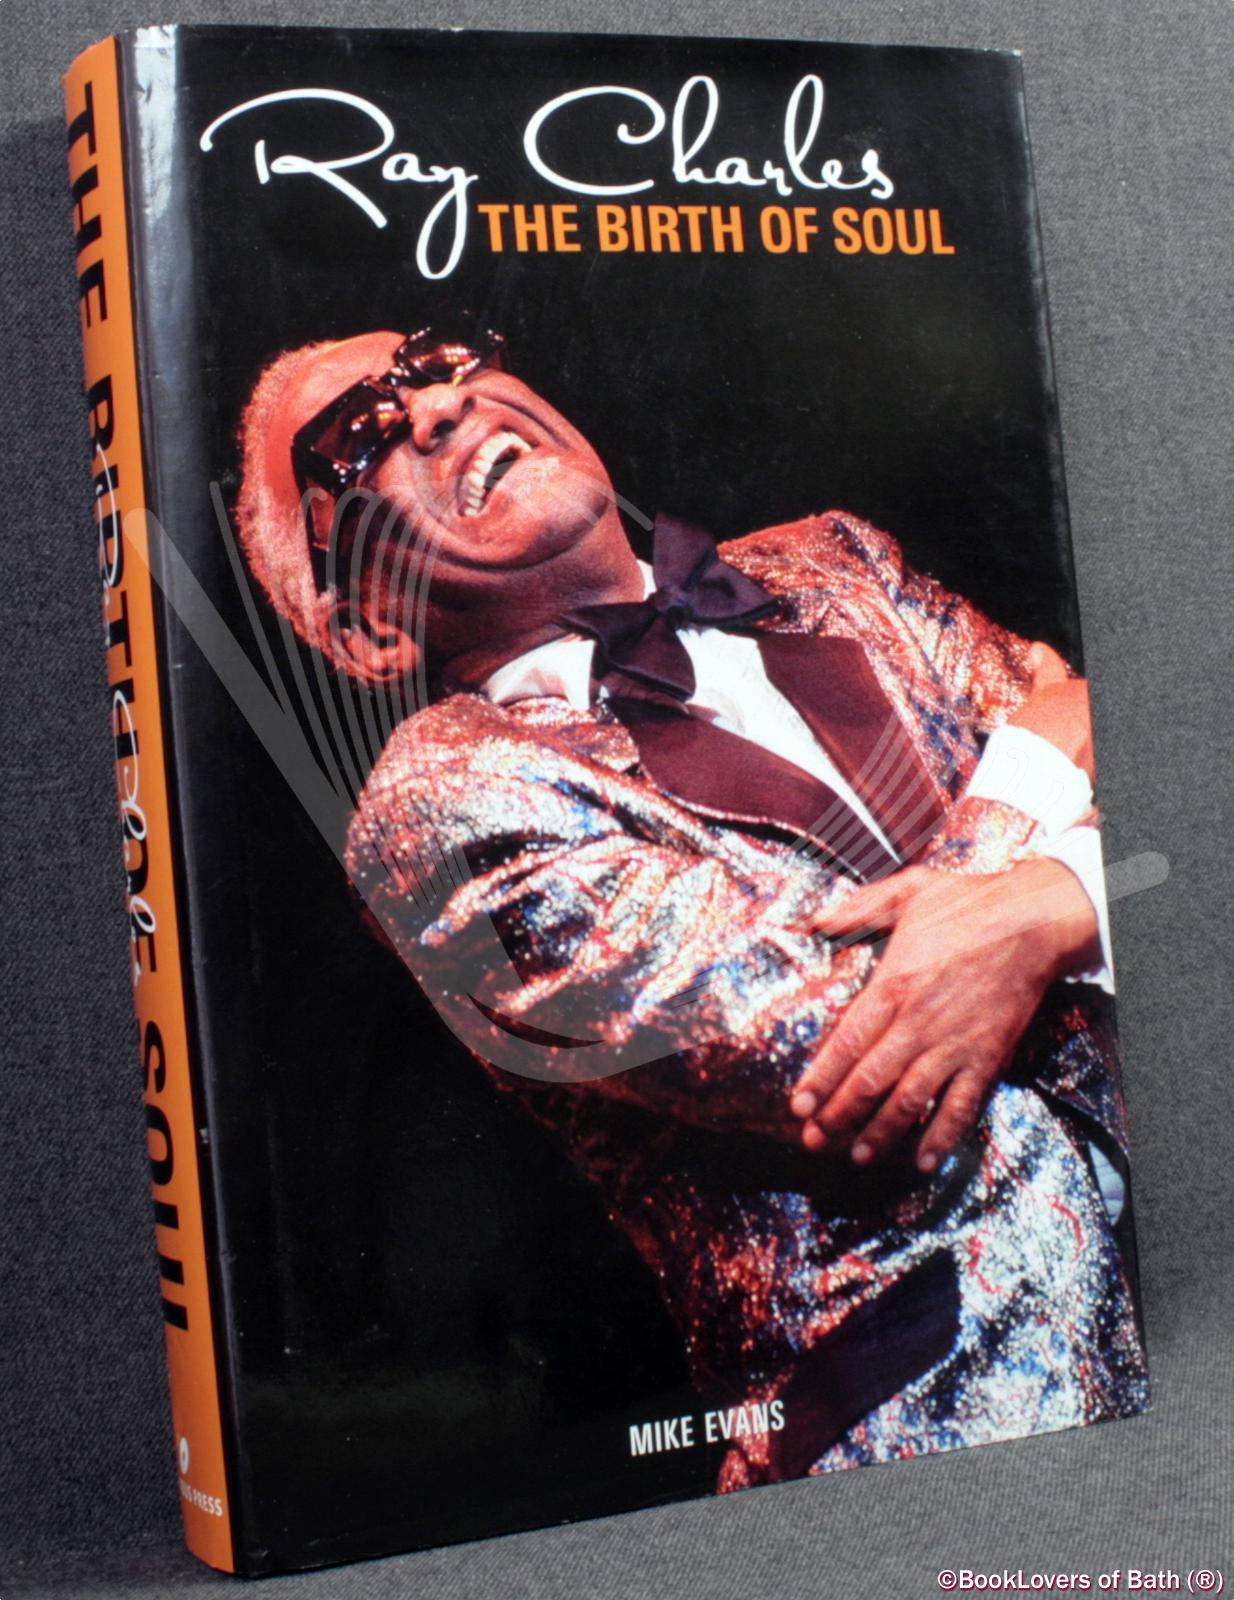 Ray Charles: The Birth of Soul - Mike Evans